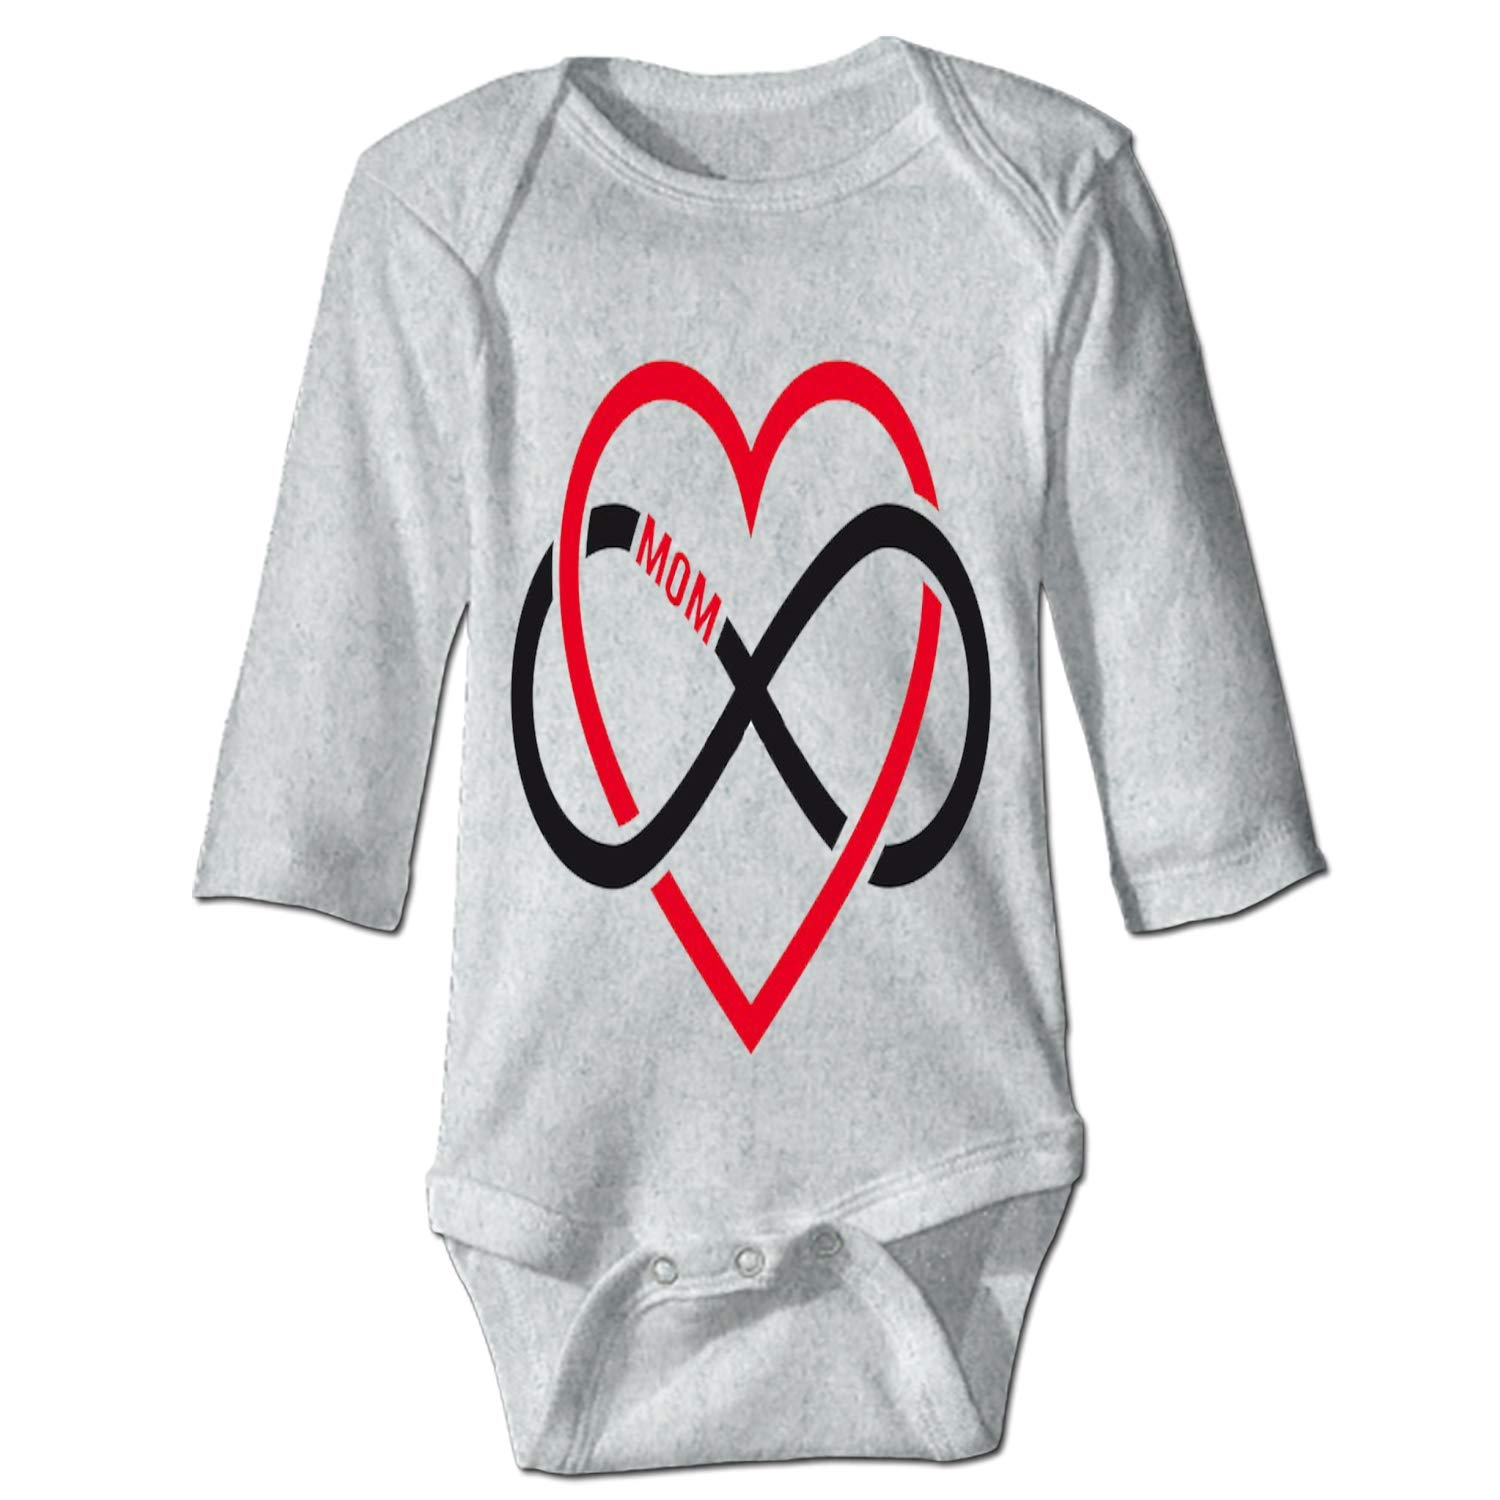 Red Heart Custom Funny Novelty Baby Cotton Bodysuits One-Piece